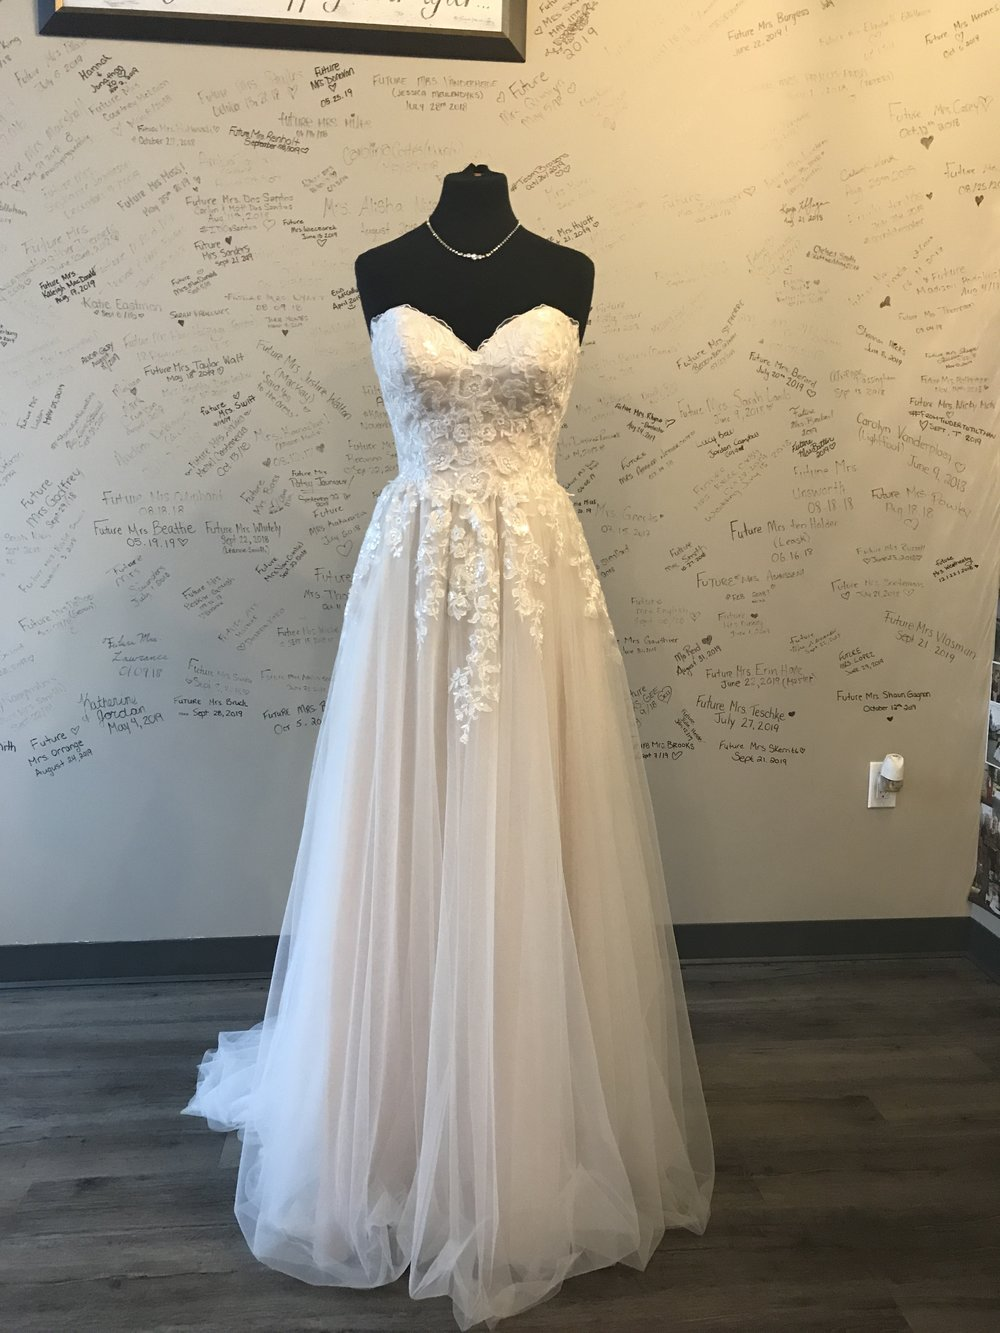 This beautiful gown from our store would be perfect for a romantic themed wedding. It has the perfect soft sparkle throughout the lace with beautiful, flowy tulle skirt. We also love the soft blush colour under the gown. It's perfect for that romantic look.